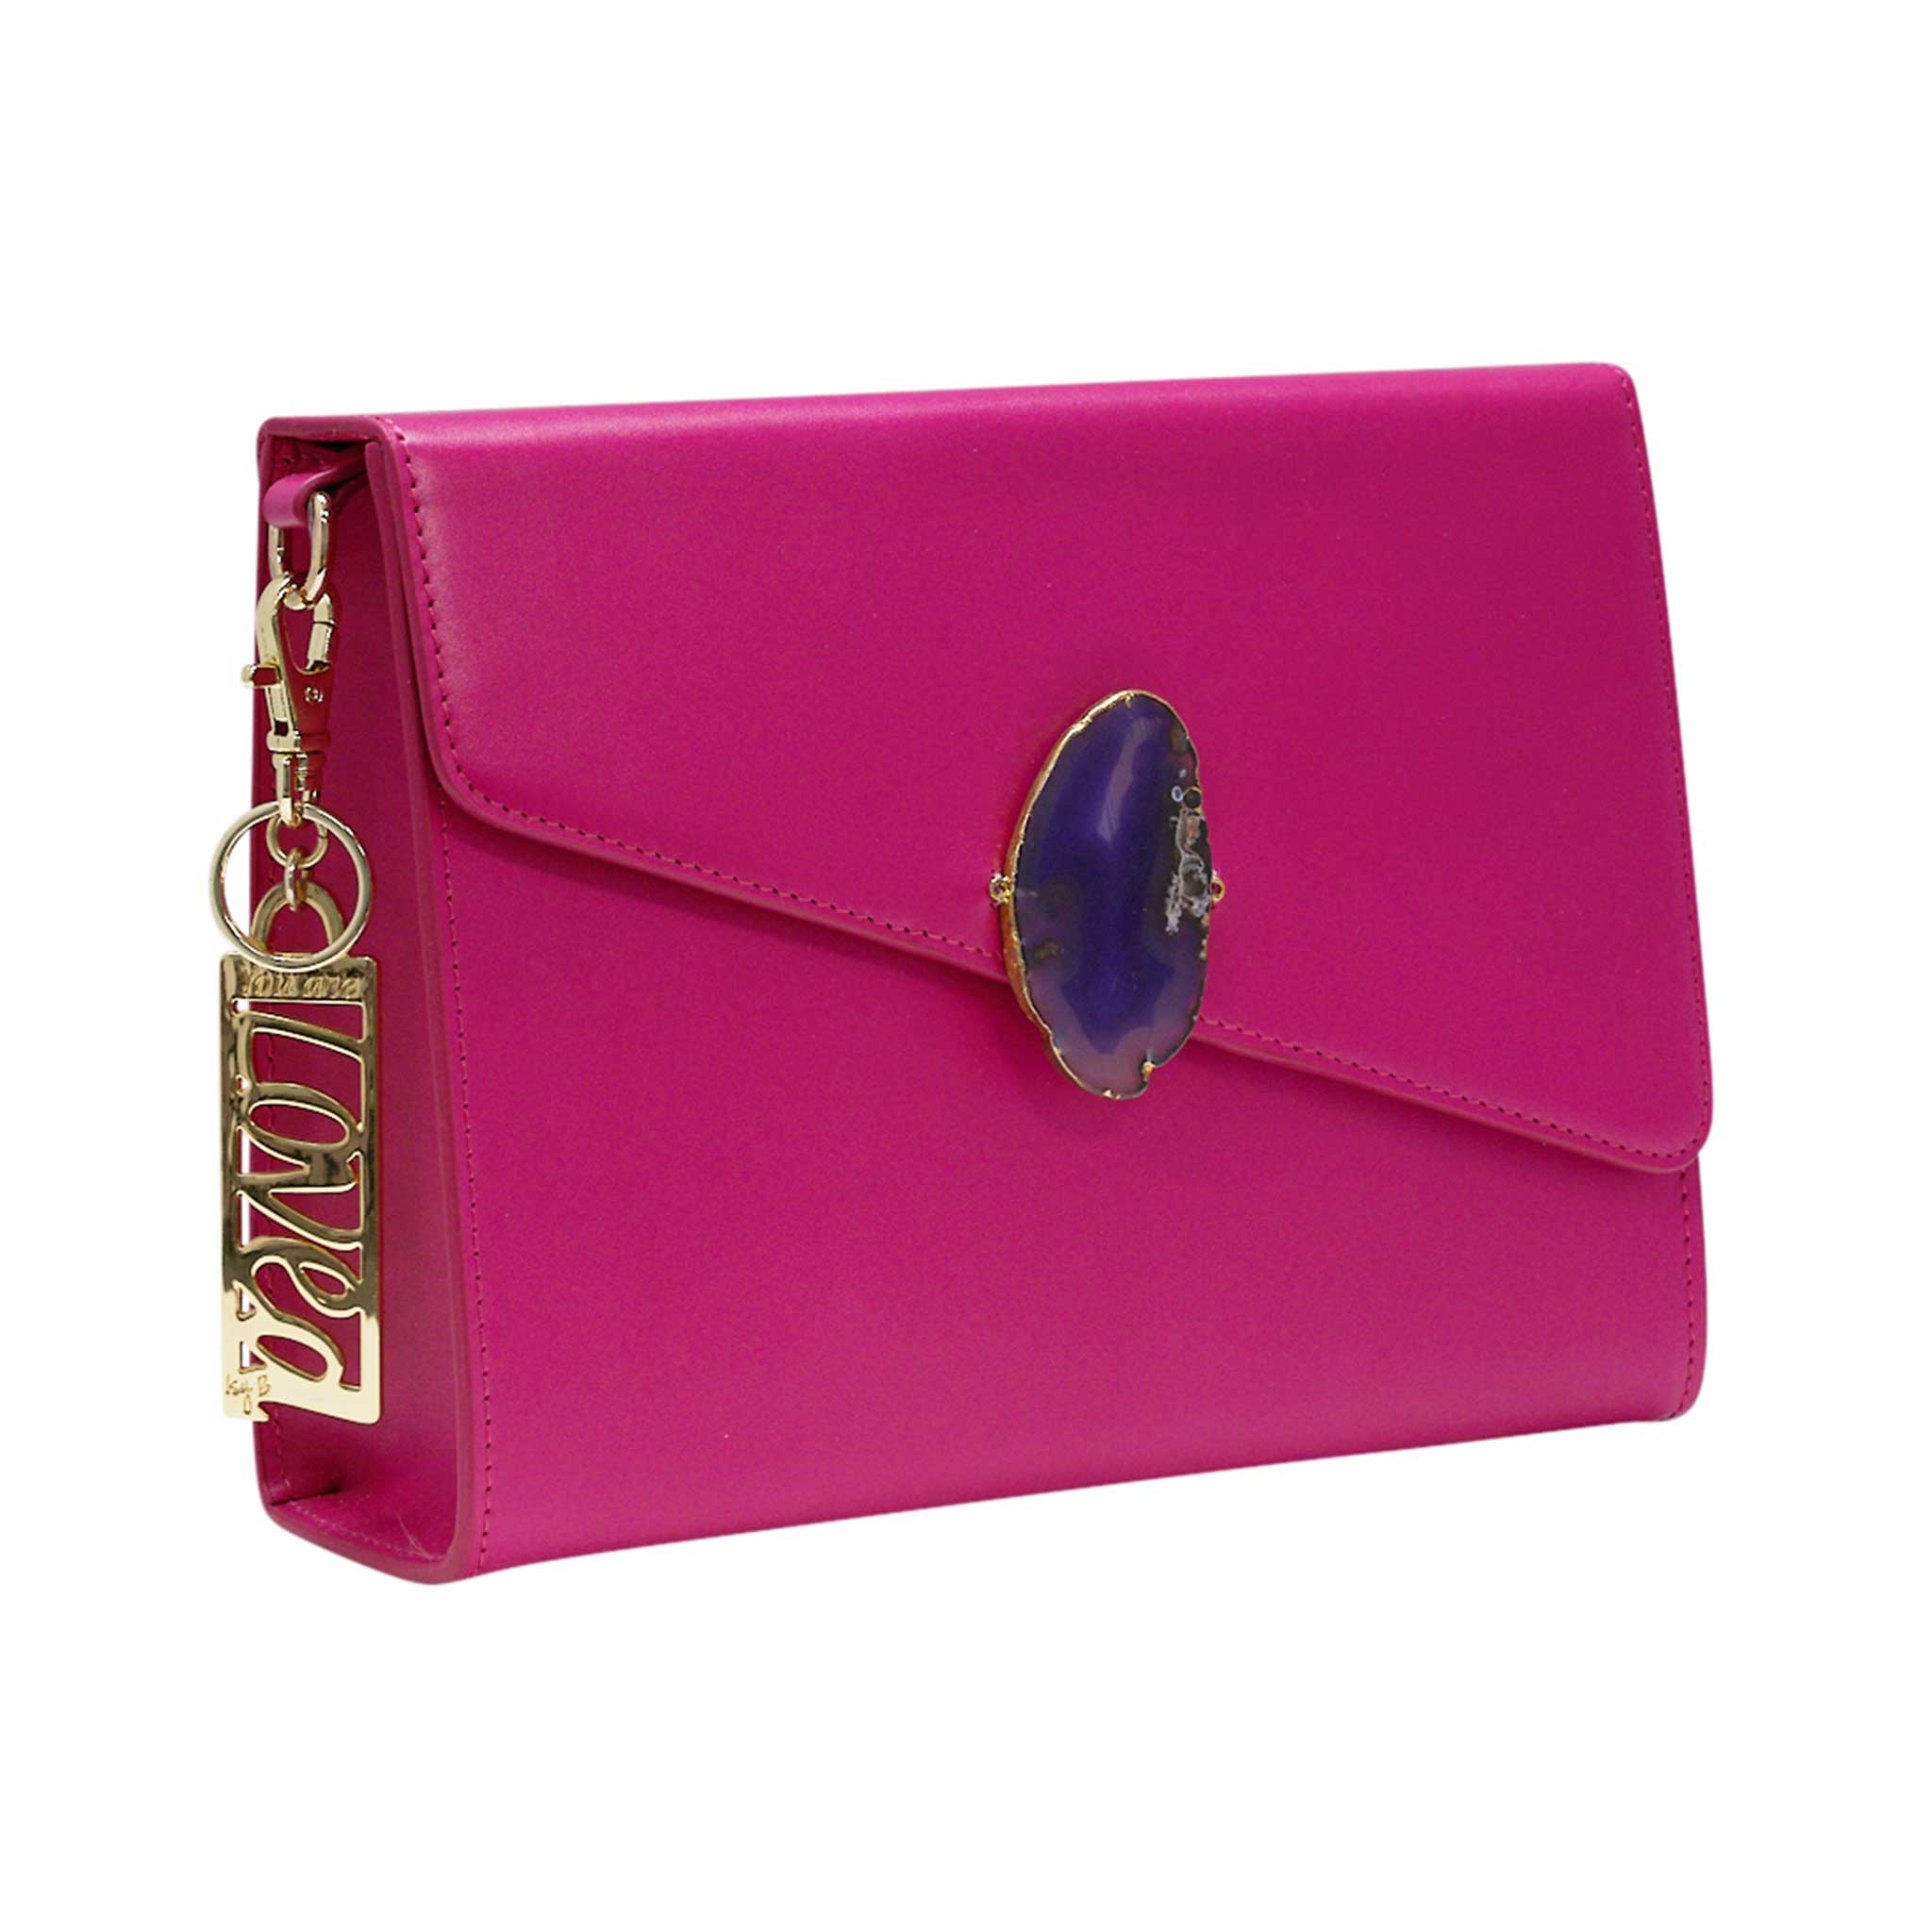 LOVED BAG - PINK RUBY LEATHER WITH PURPLE AGATE - 1.01.006.005